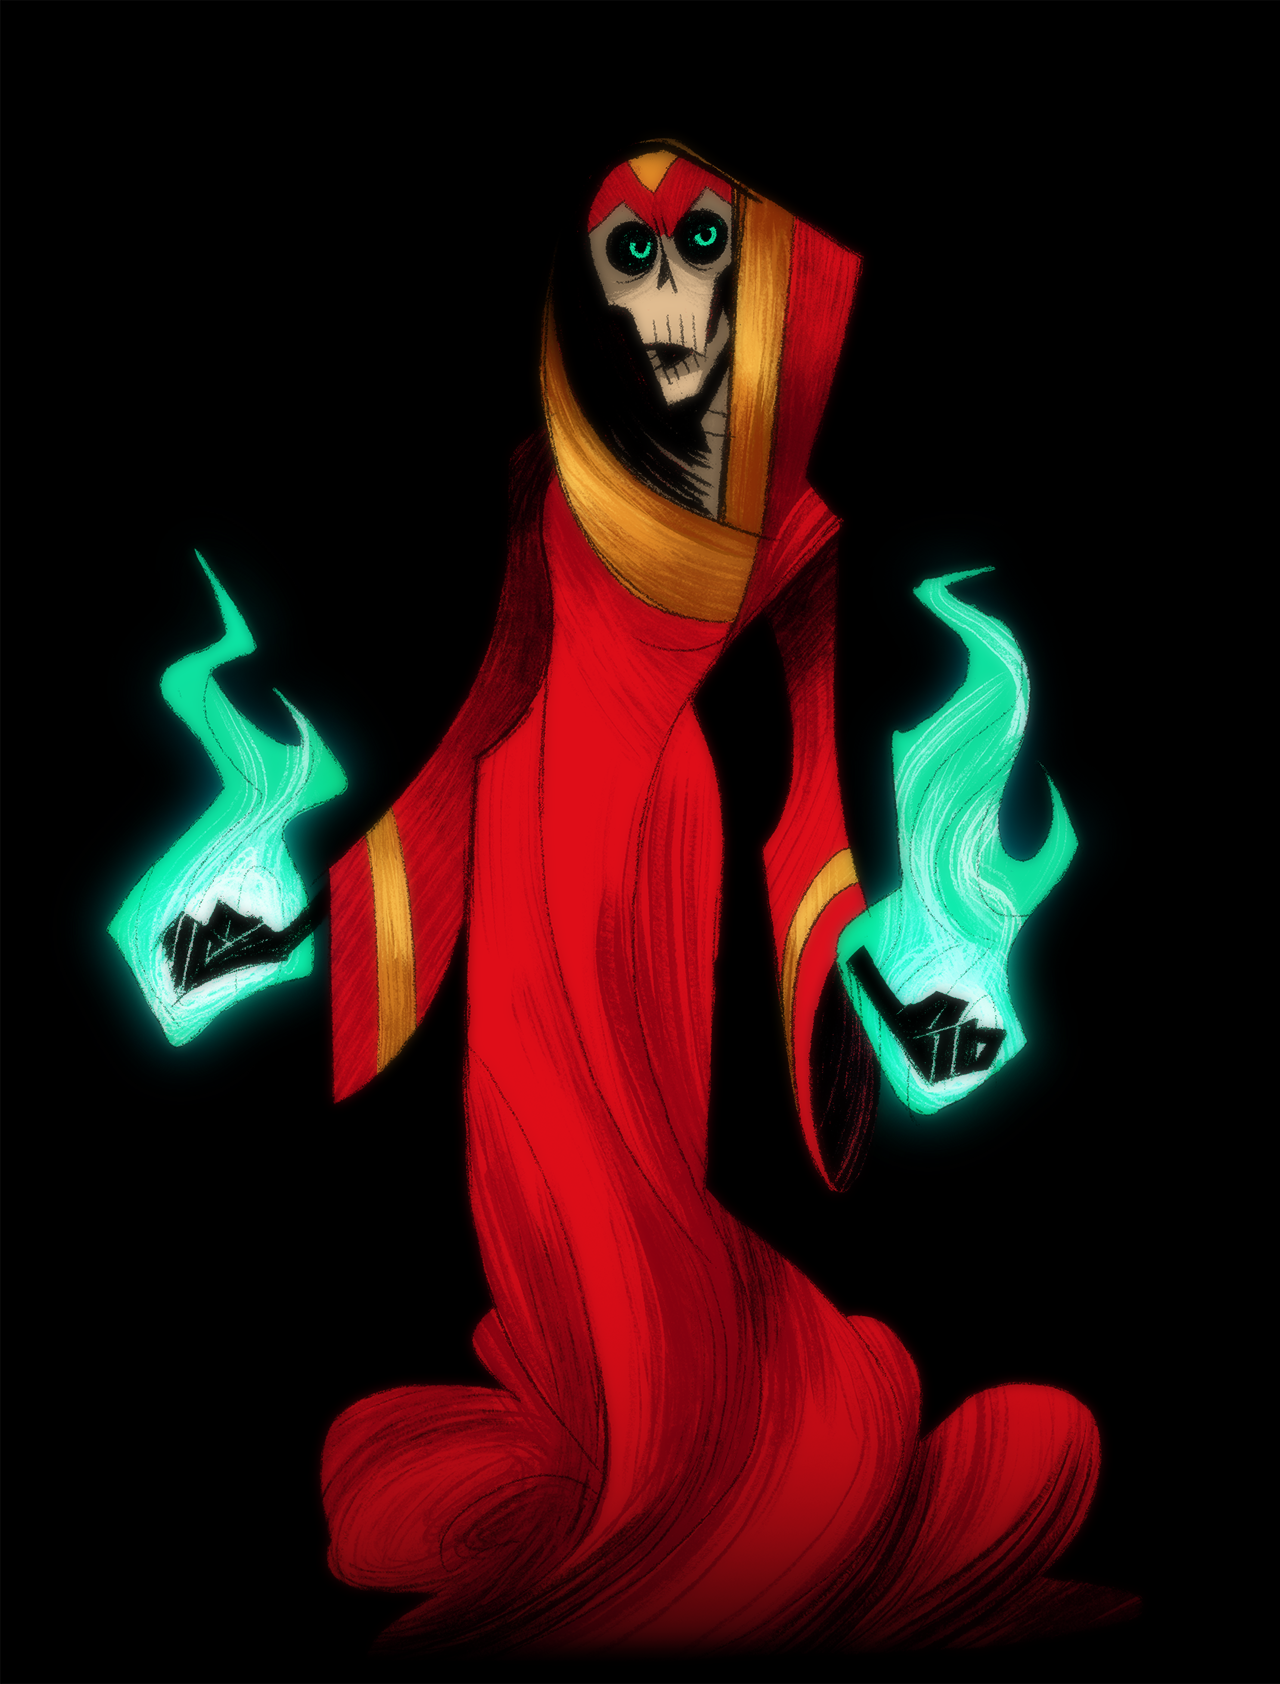 Lup in her lich form stands with green-blue flames engulfing her hands